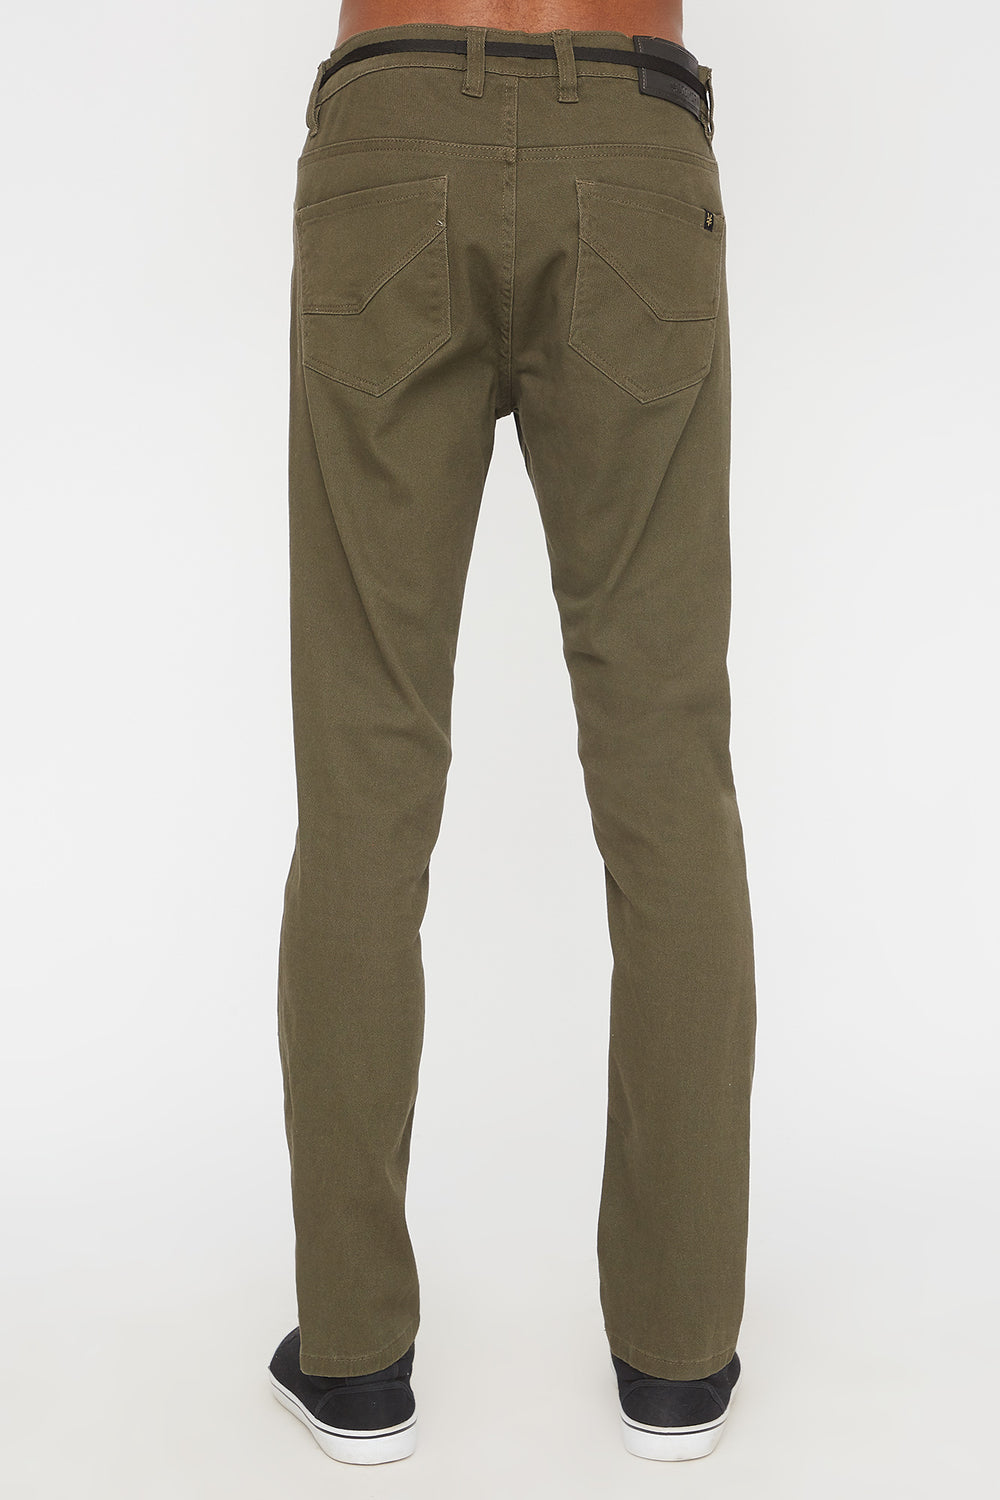 Zoo York Mens Stretch Skinny Colour Jeans Khaki